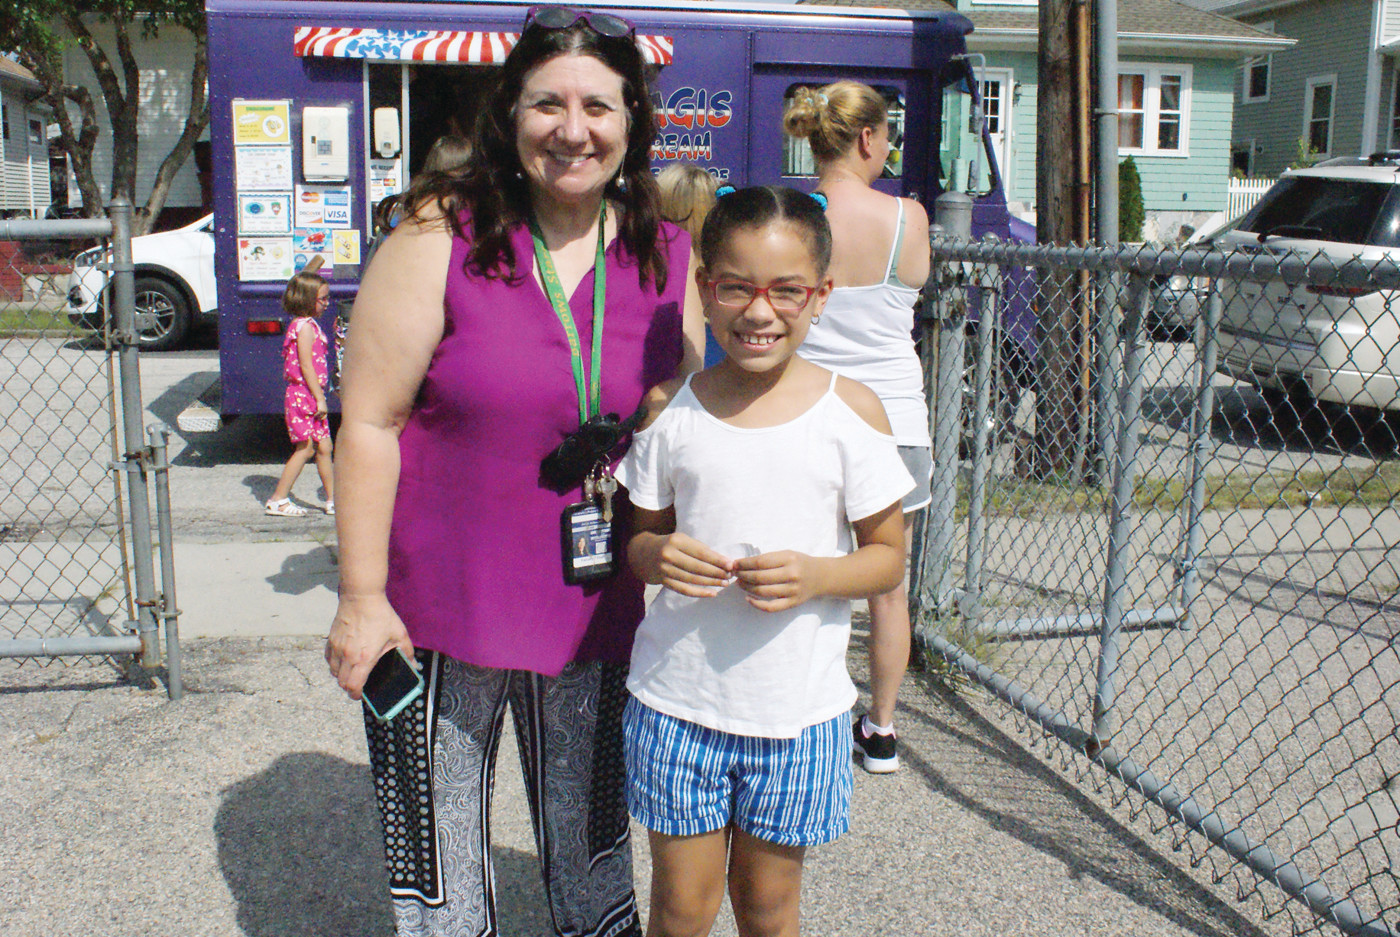 A WARM WELCOME: Chester Barrows Elementary School Principal, Janet Antonelli, welcomed incoming third grader, Briana Fondeur at their Aug. 28 Meet & Greet.